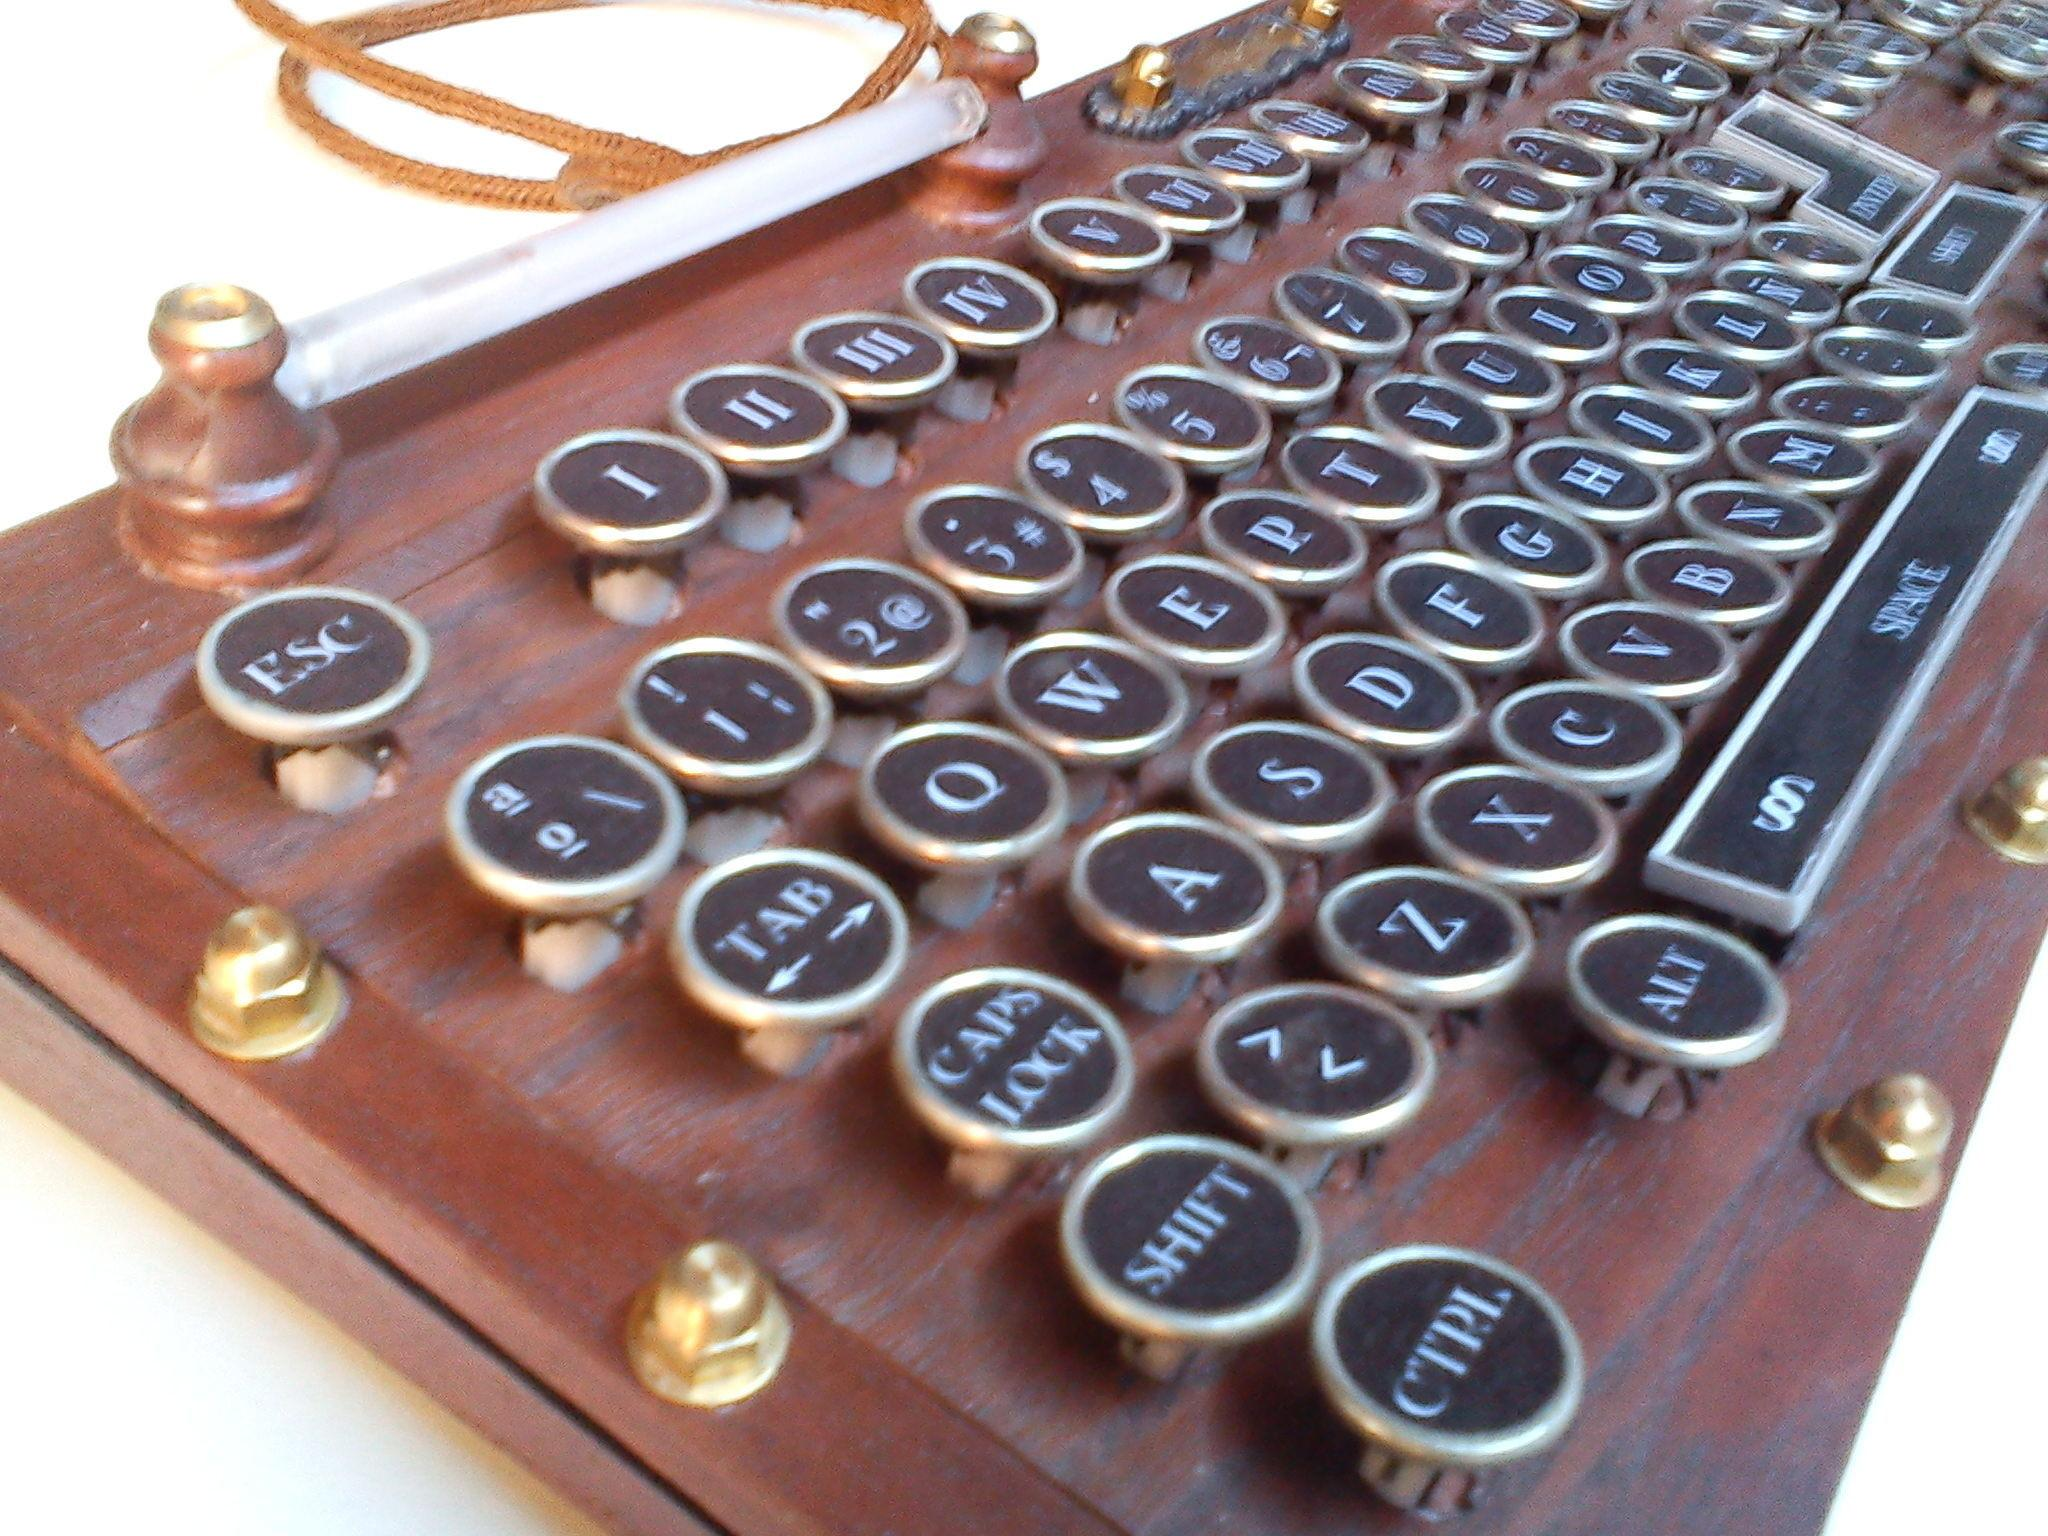 Steampunk Keyboard Version